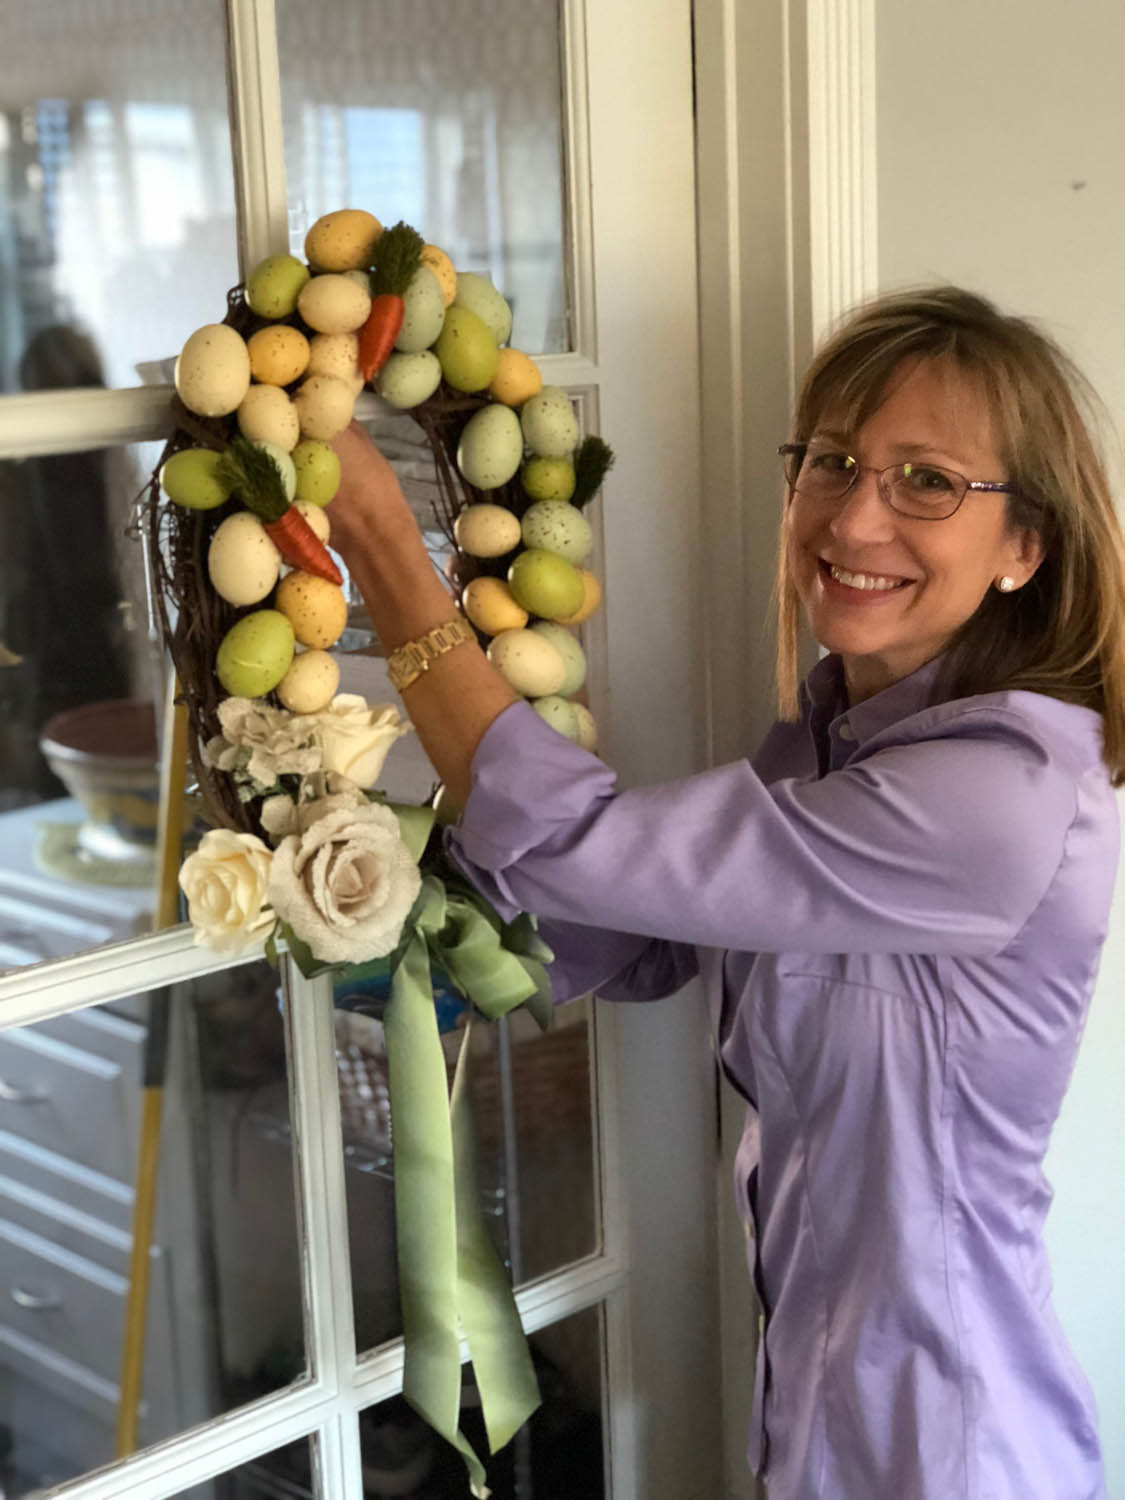 Ashley hangs up the hand made Easter egg wreath on a paned glass door